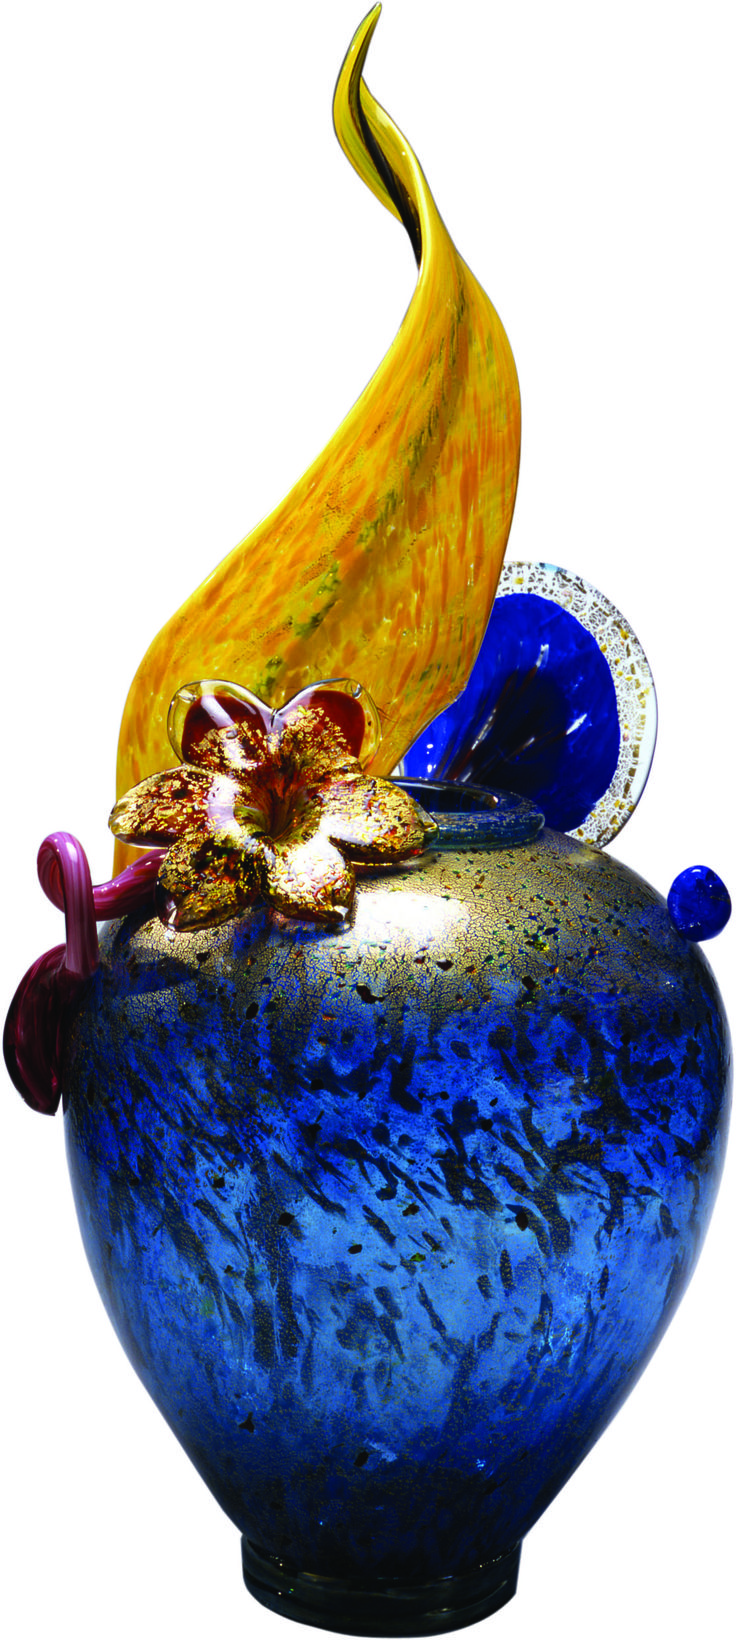 Cuihuly. Click on the image to see the close up, glass work is amazing.